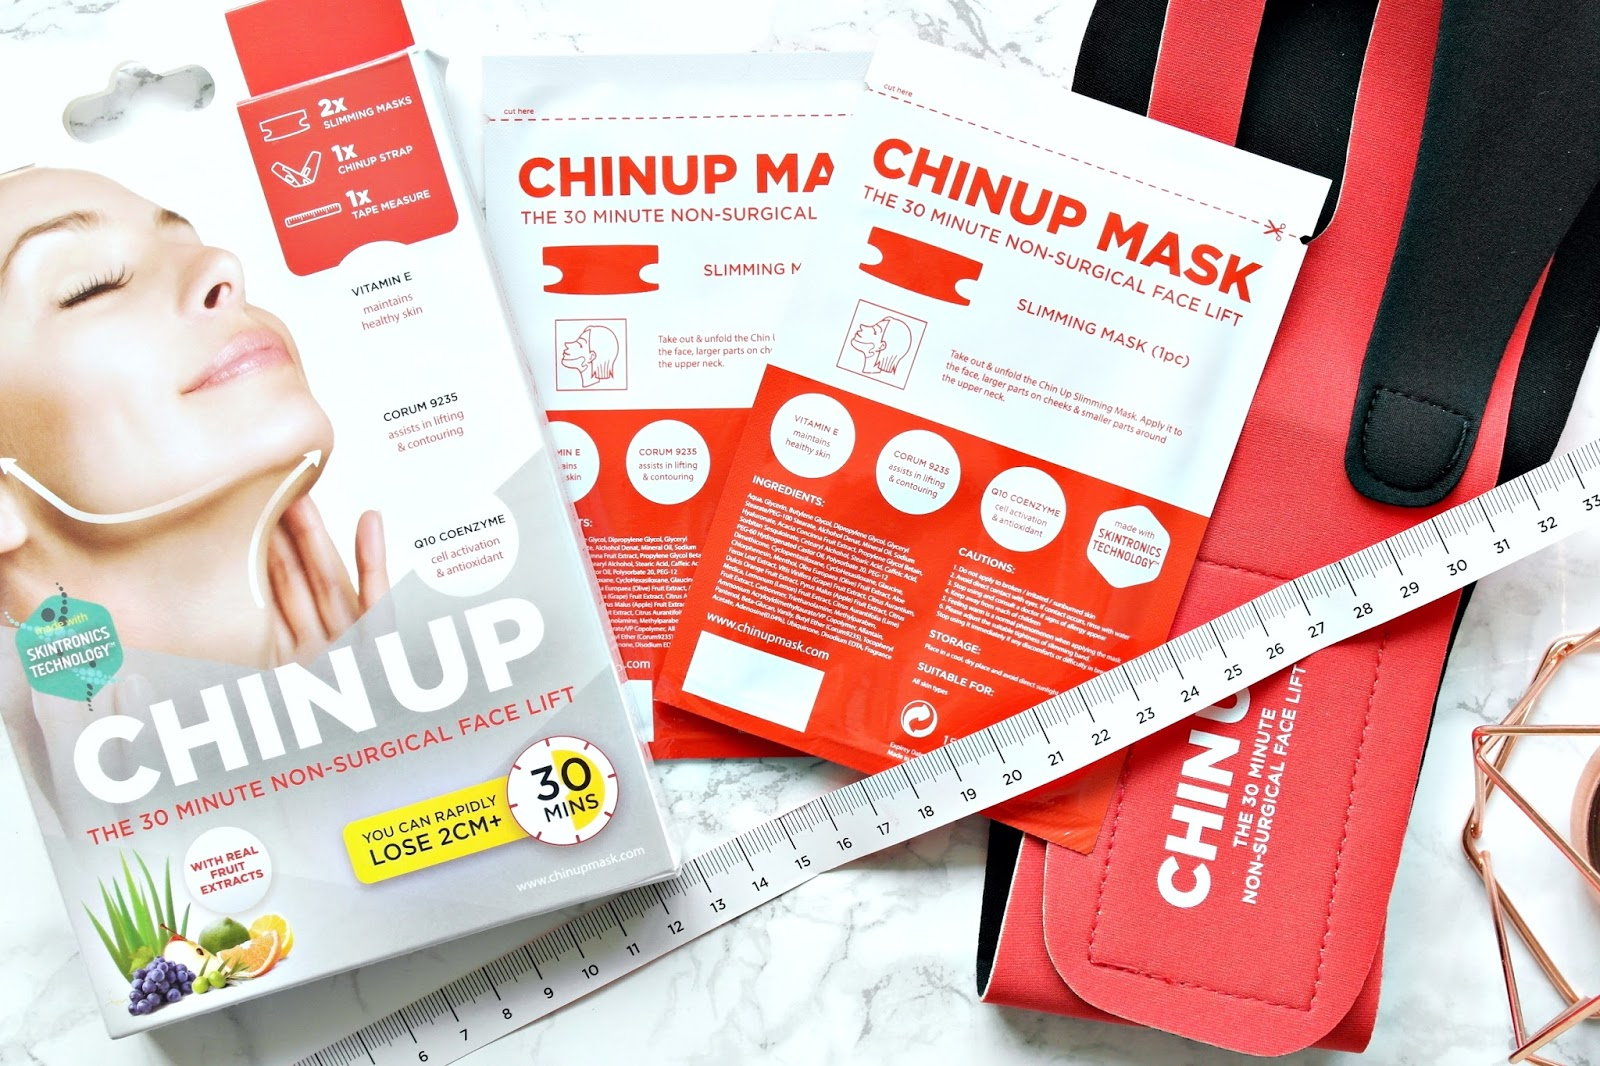 ChinUp mask, review, before and after pics